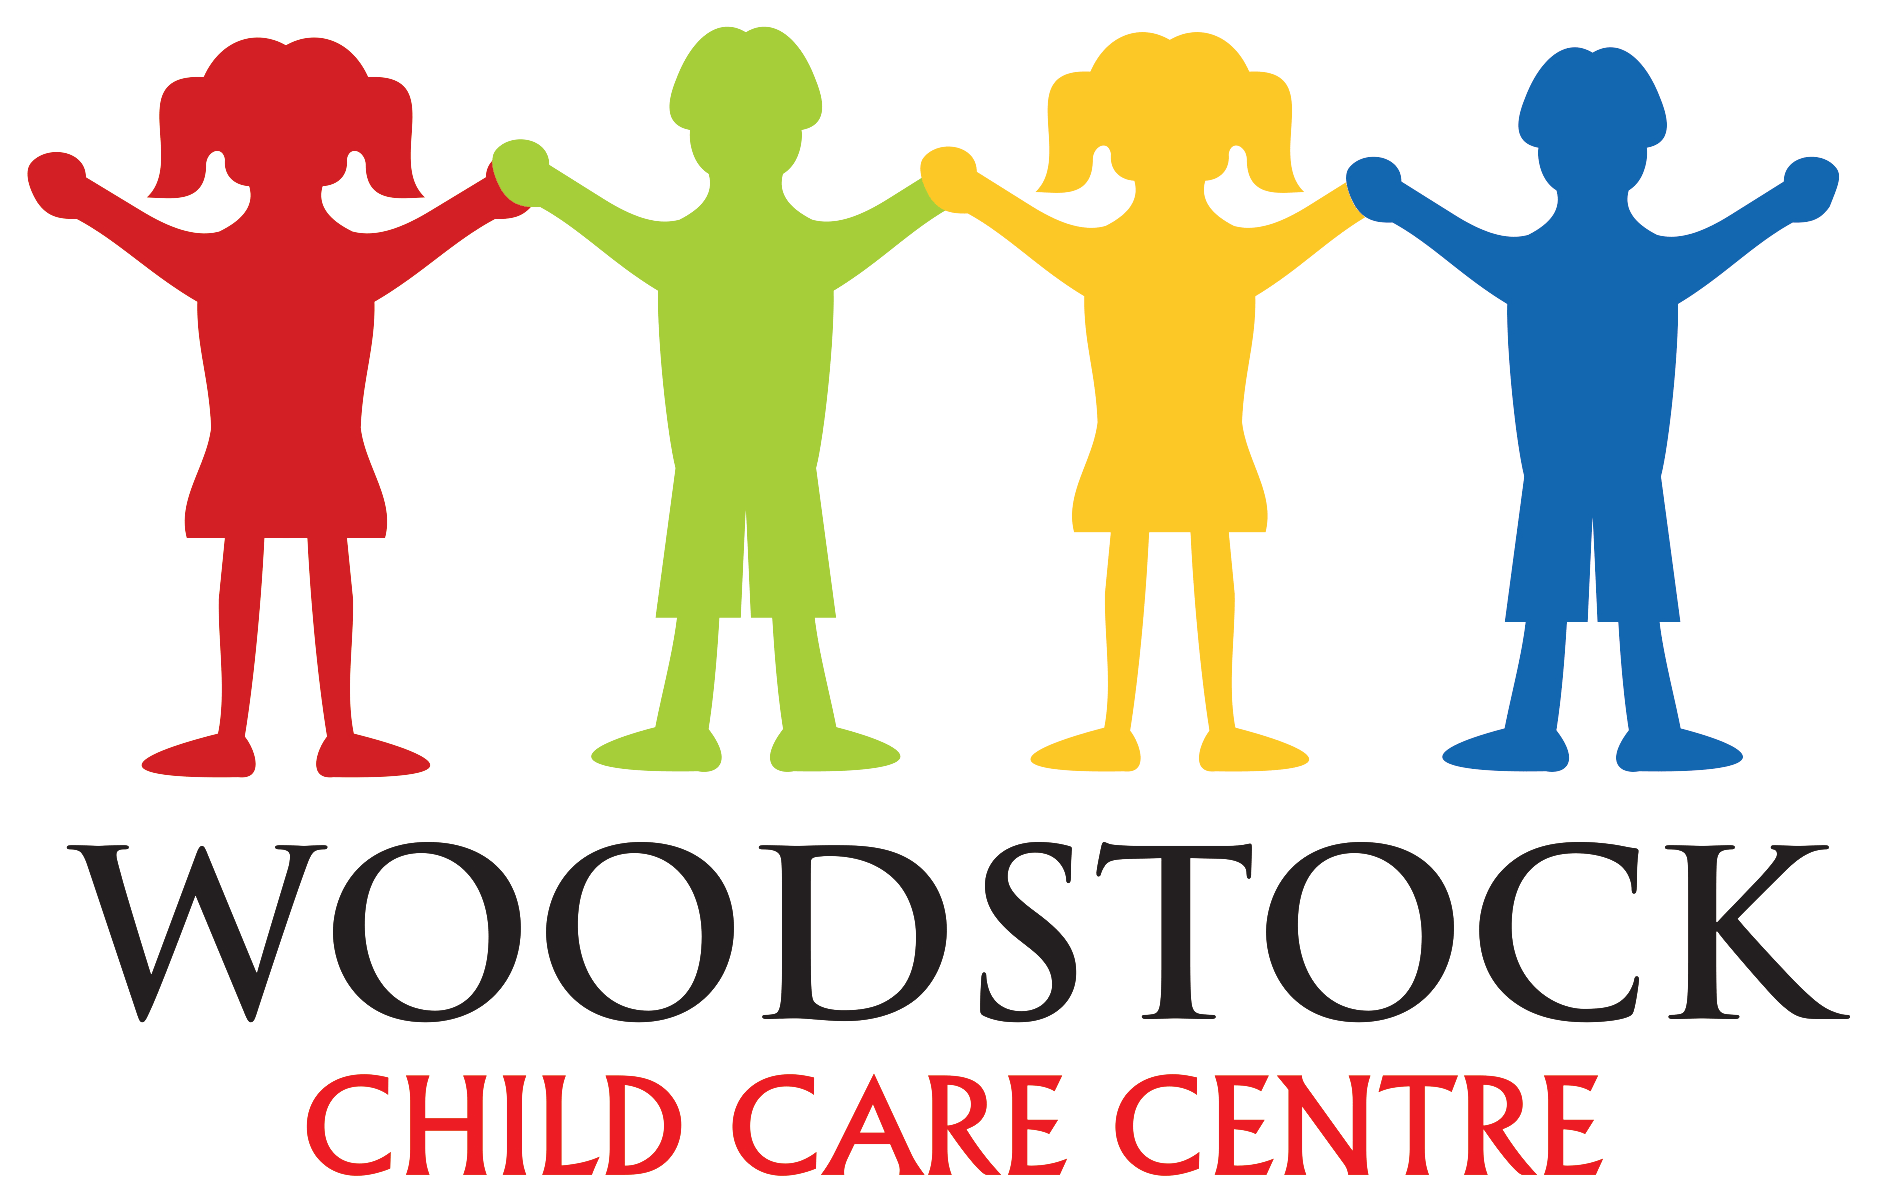 Child Care Centres Parramatta Woodstock Child Care To Live Learn Grow